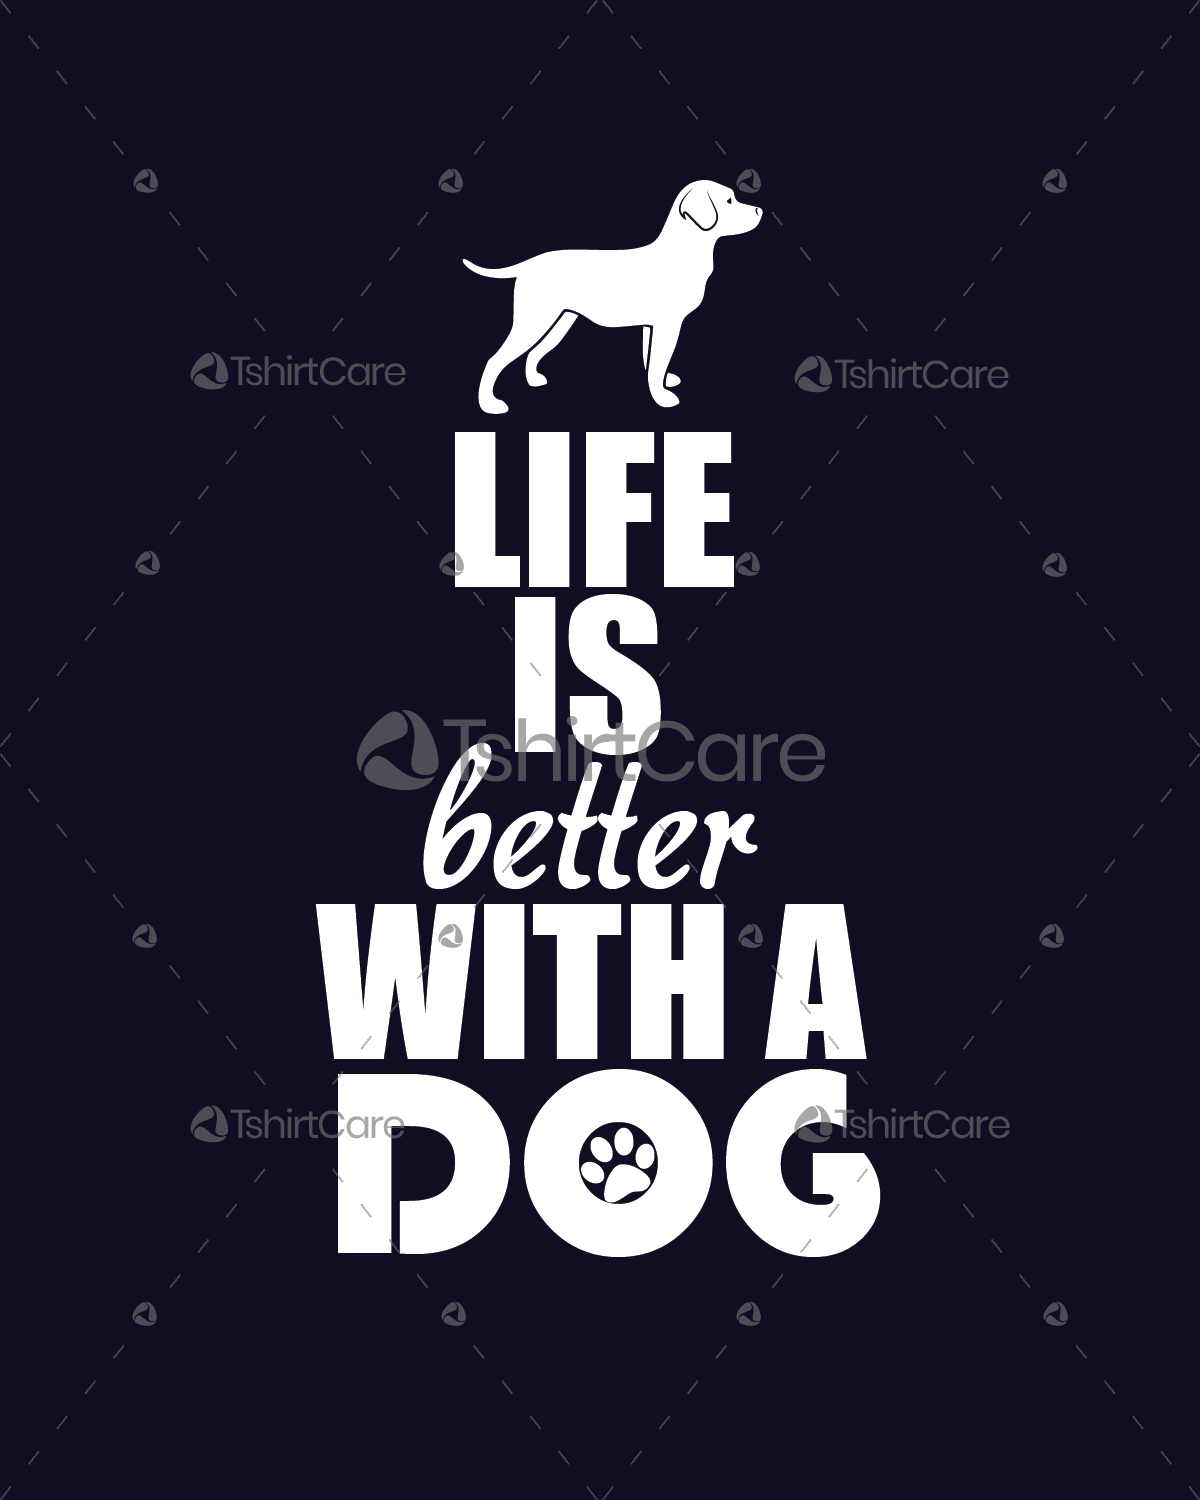 aa1ad62d08498 Life is better with a dog T-Shirt Design Dog lovers Tee Shirts Gift for  Men's & Women's - TshirtCare